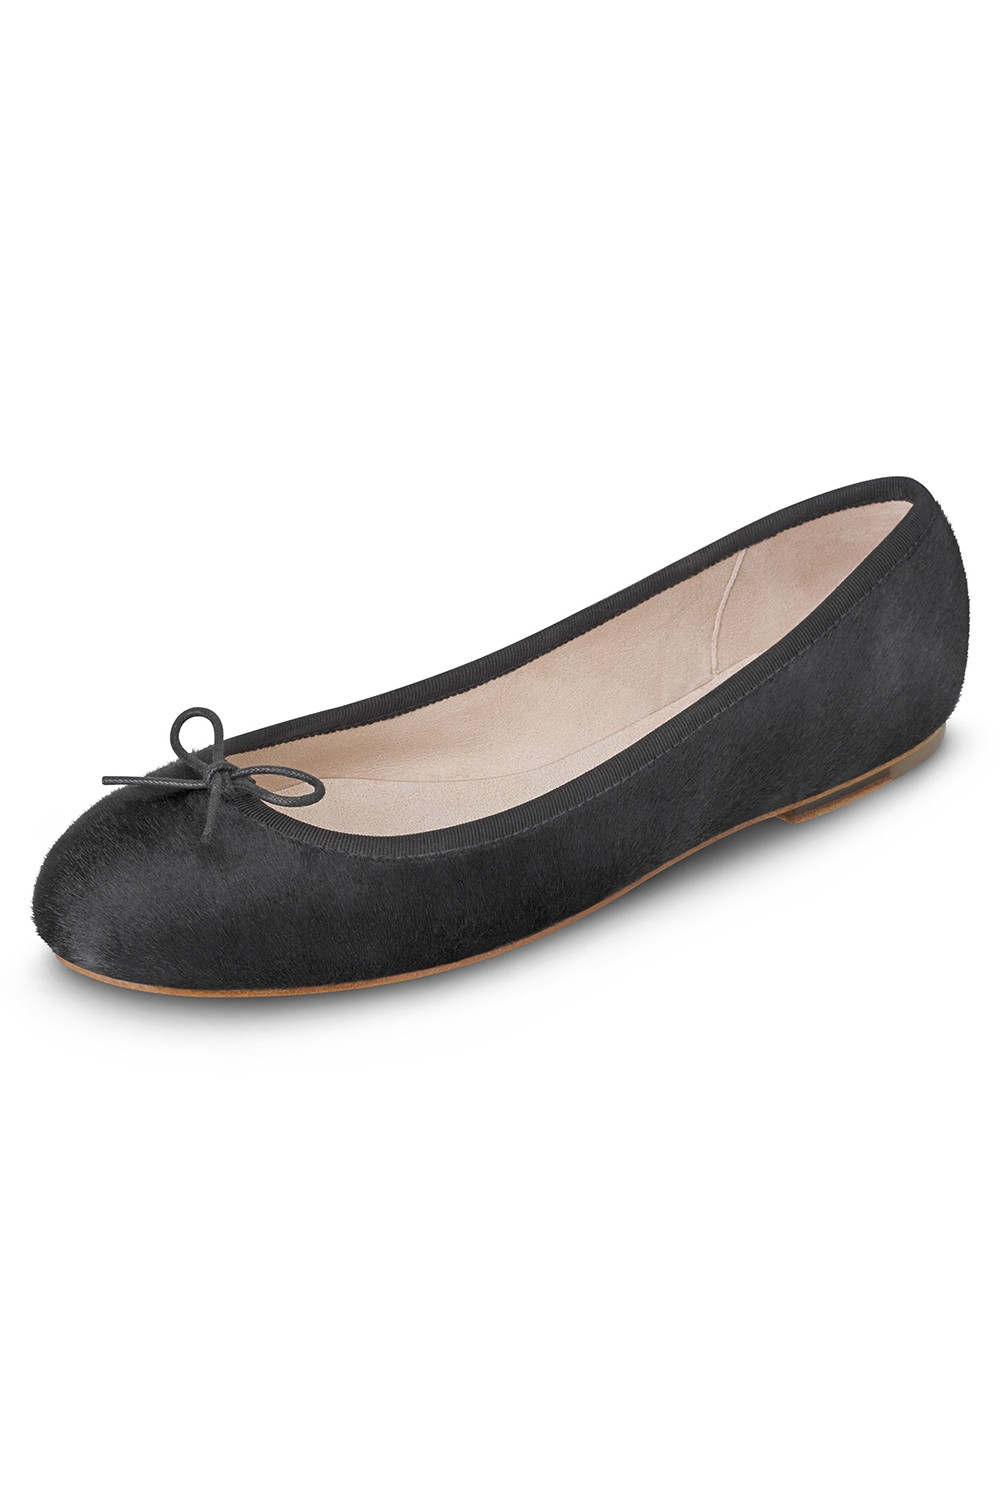 Sahara Ladies Ballet Flat Womens Fashion Shoes